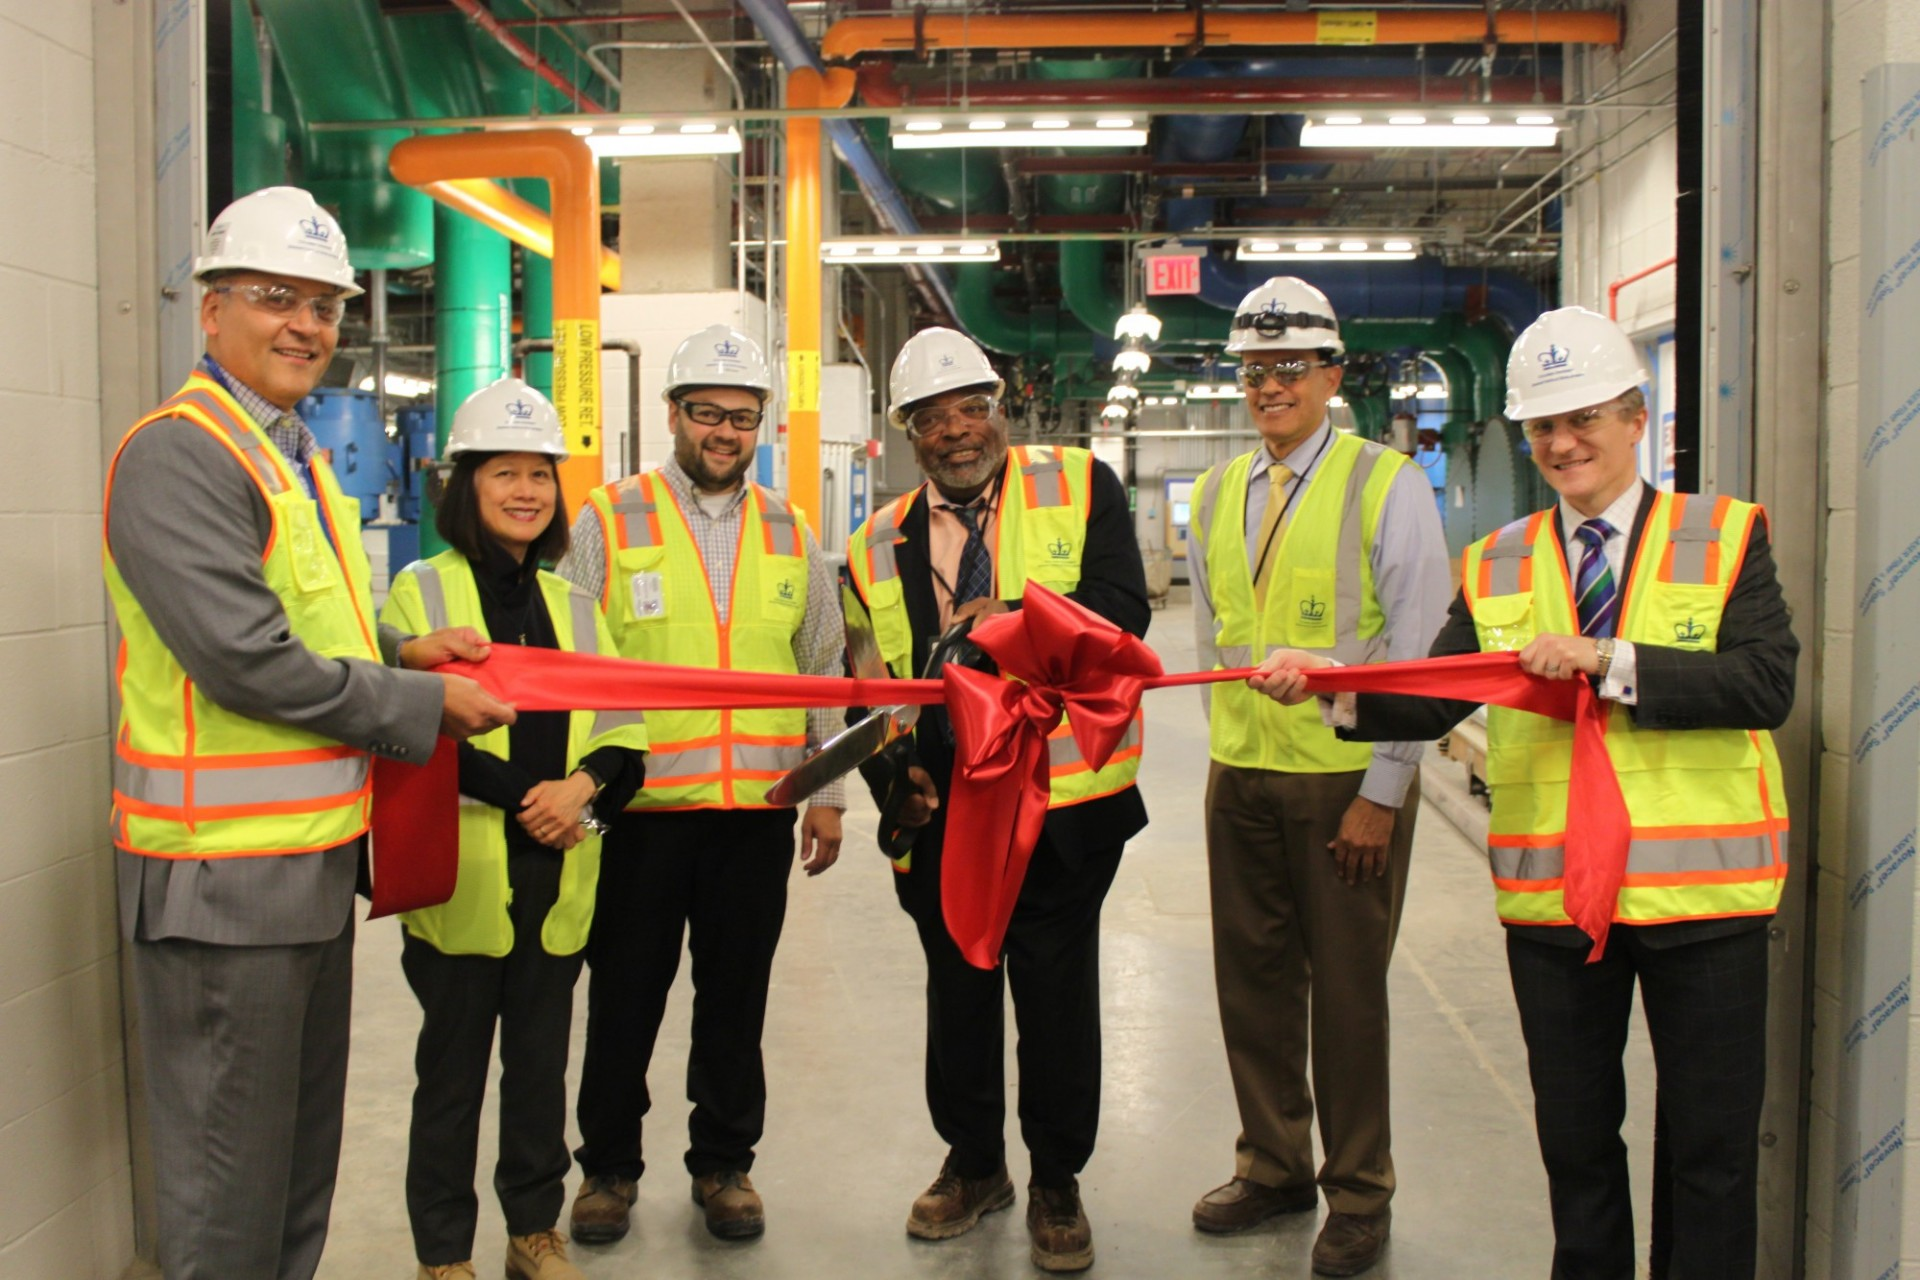 Members of Columbia's Manhattanville team cut a ribbon during an event in May at the Central Energy Plant in recognition of achieving the first temporary certificate of occupancy at the Manhattanville campus. The Central Energy Plant is a below grade facility that provides chilled water, high pressure steam and normal electric power across the Manhattanville campus.